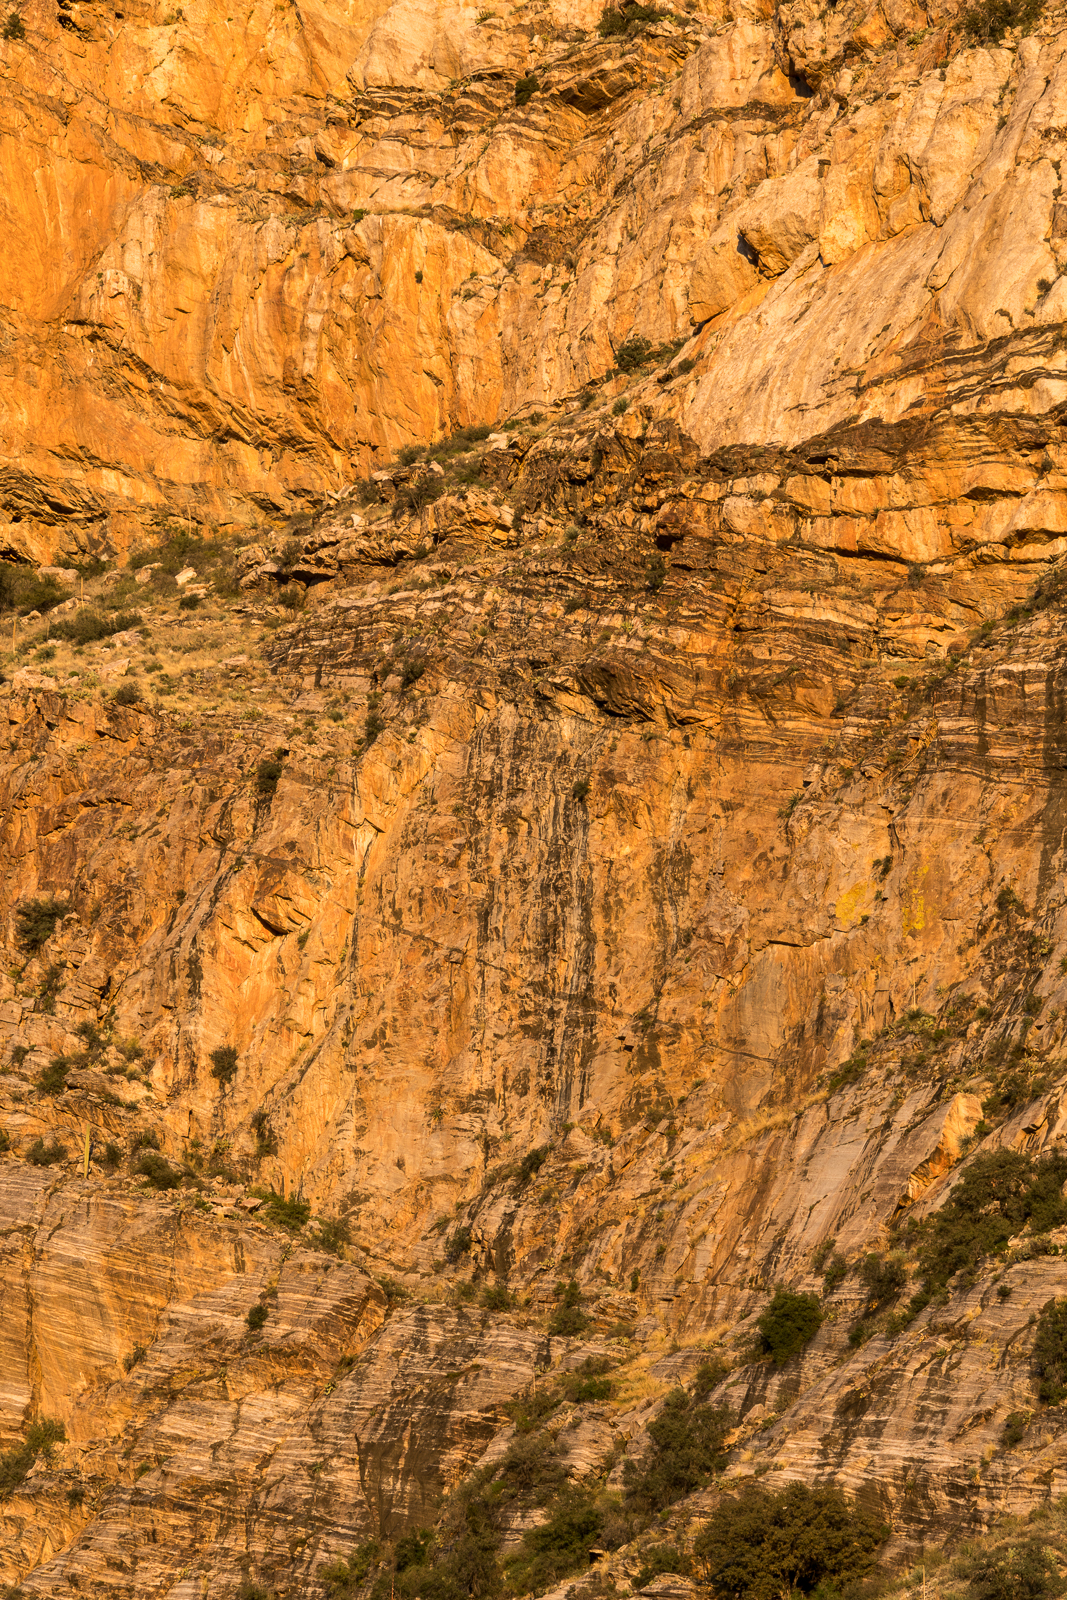 A section of the Pontatoc Ridge Cliffs. March 2016.